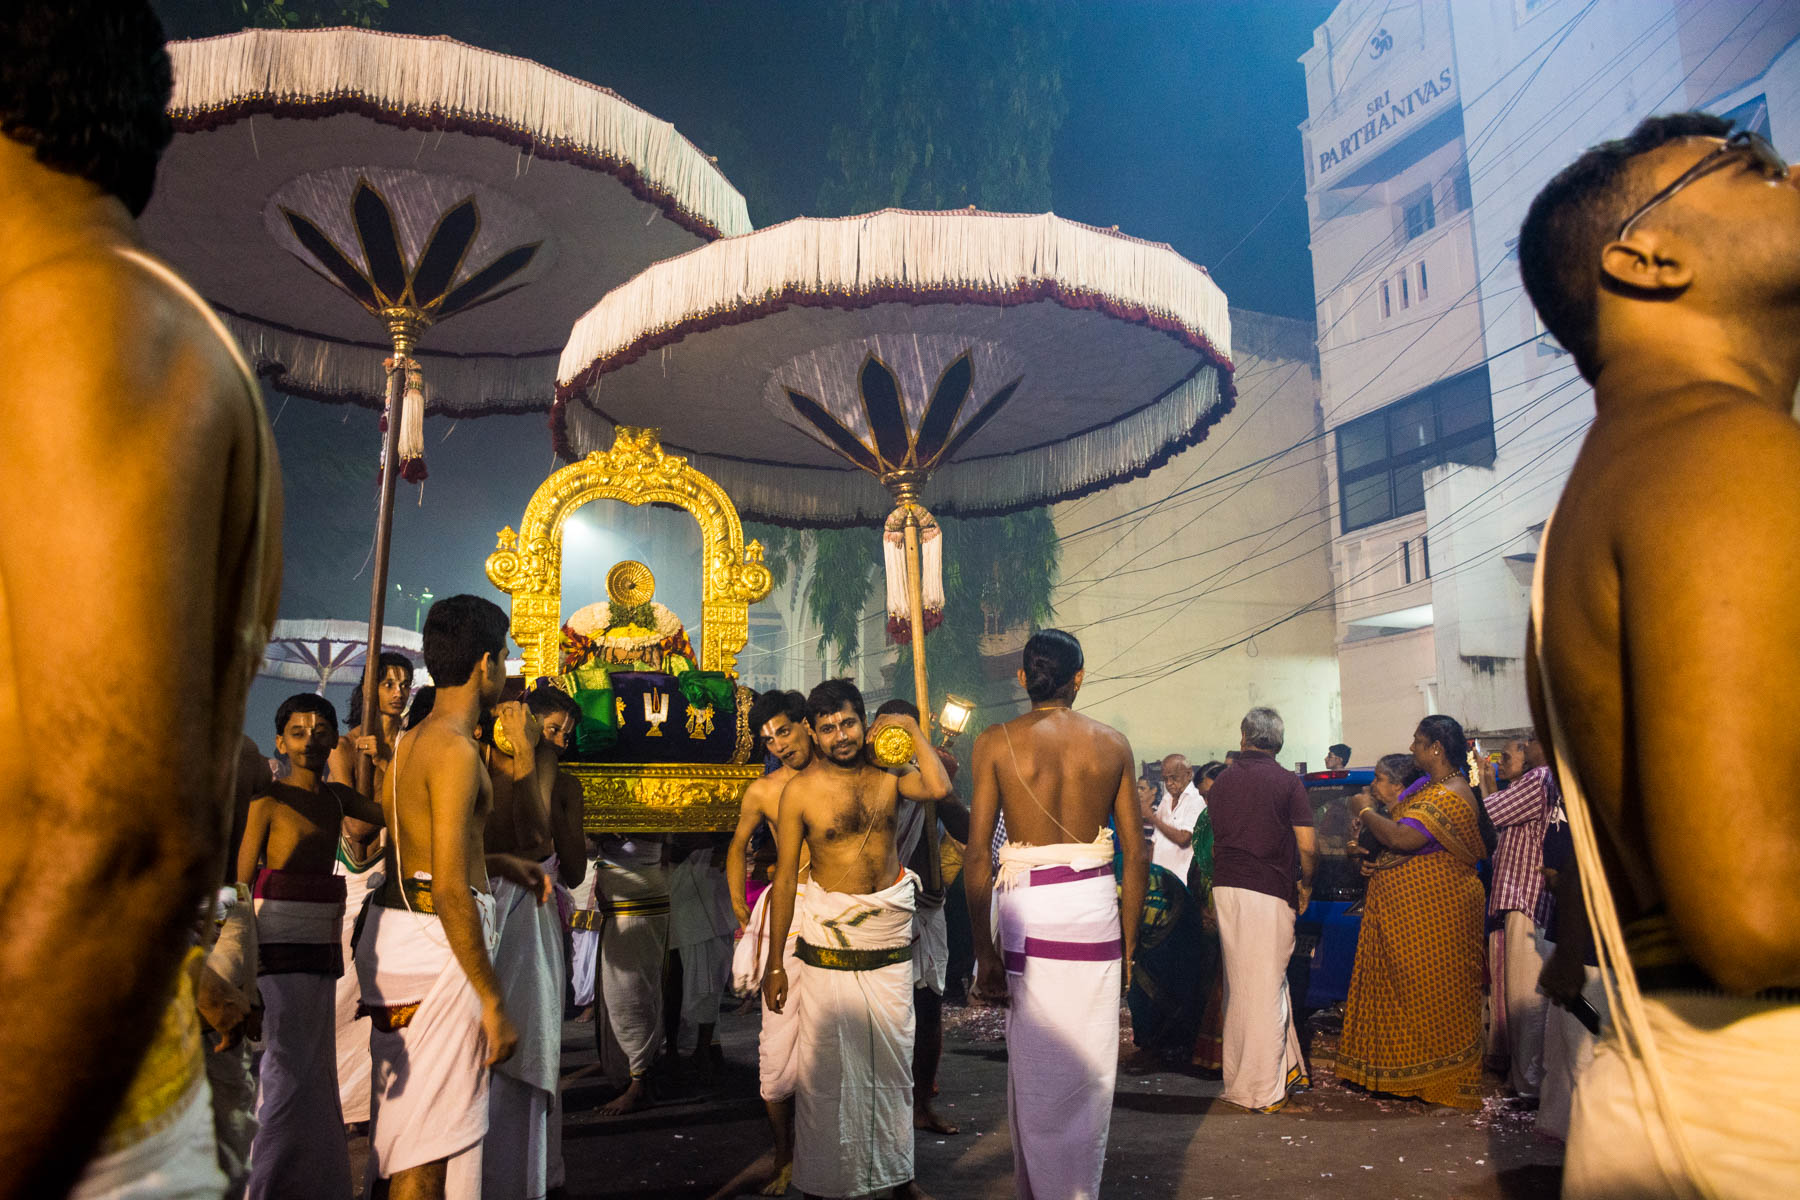 Men in dhoti leading the procession while celebrating Diwali in Chennai, India - Lost With Purpose